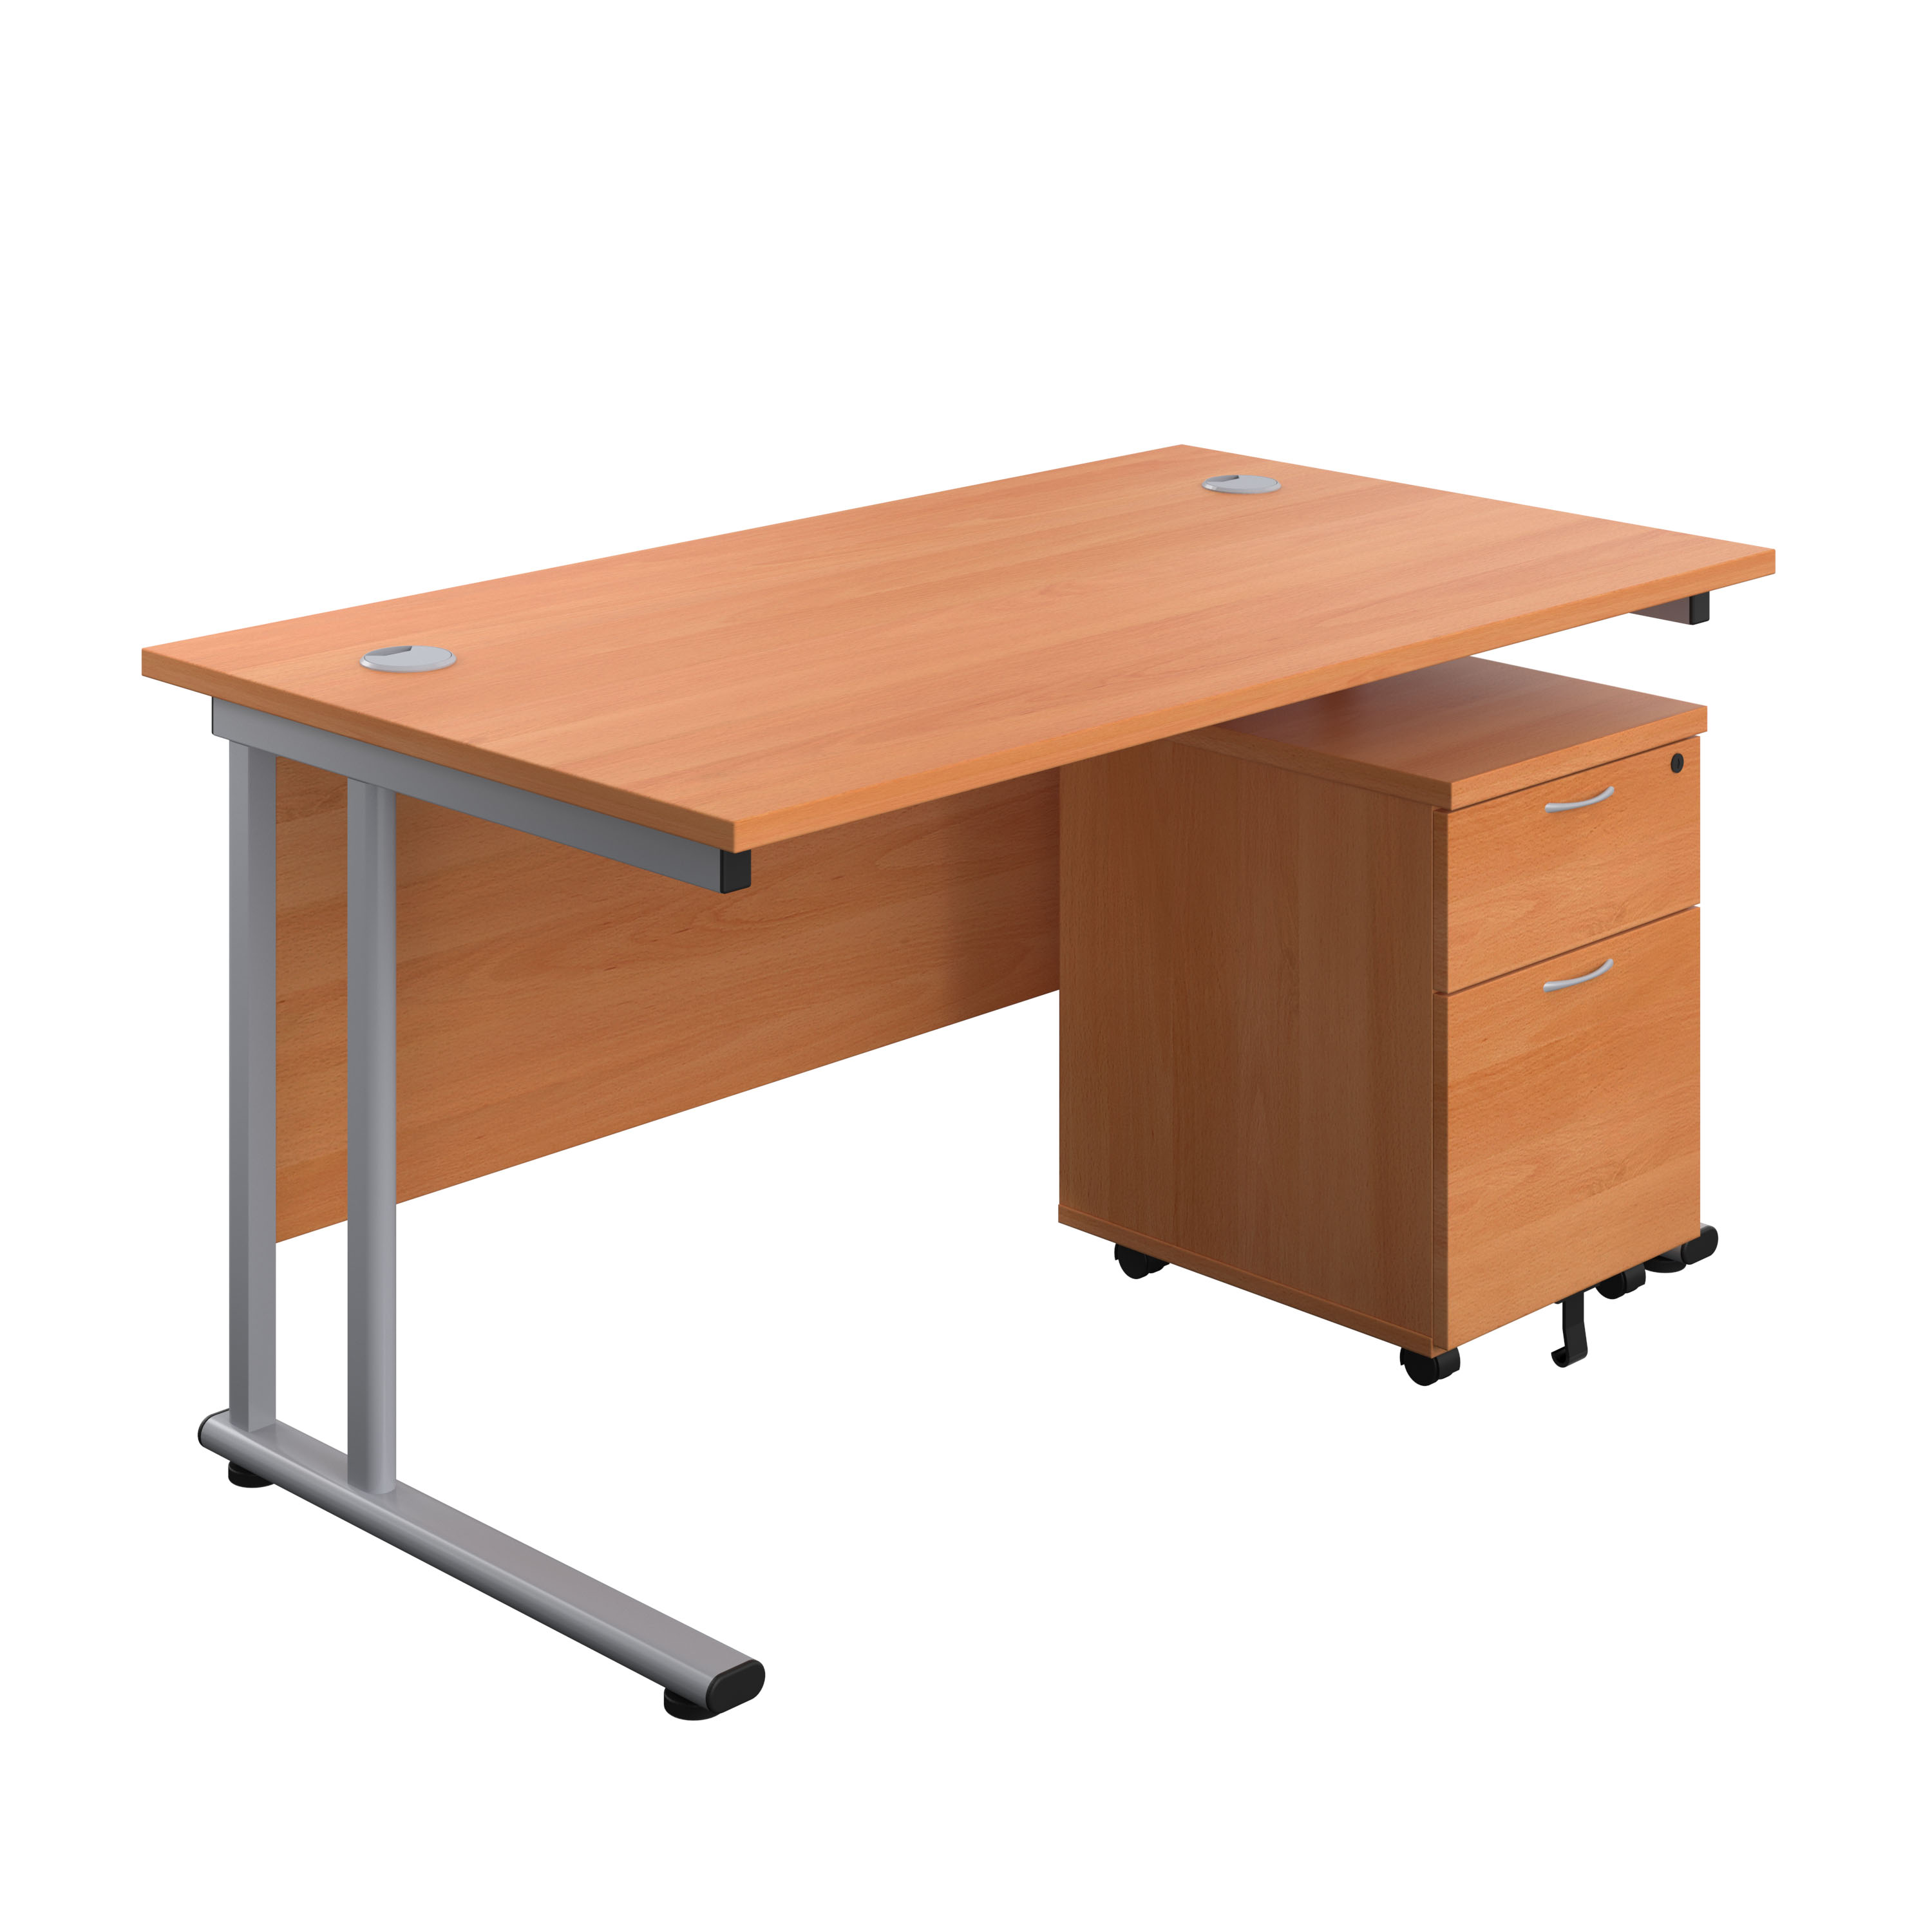 Start 1400mm Desk with 2 Drawer Mobile Pedestal